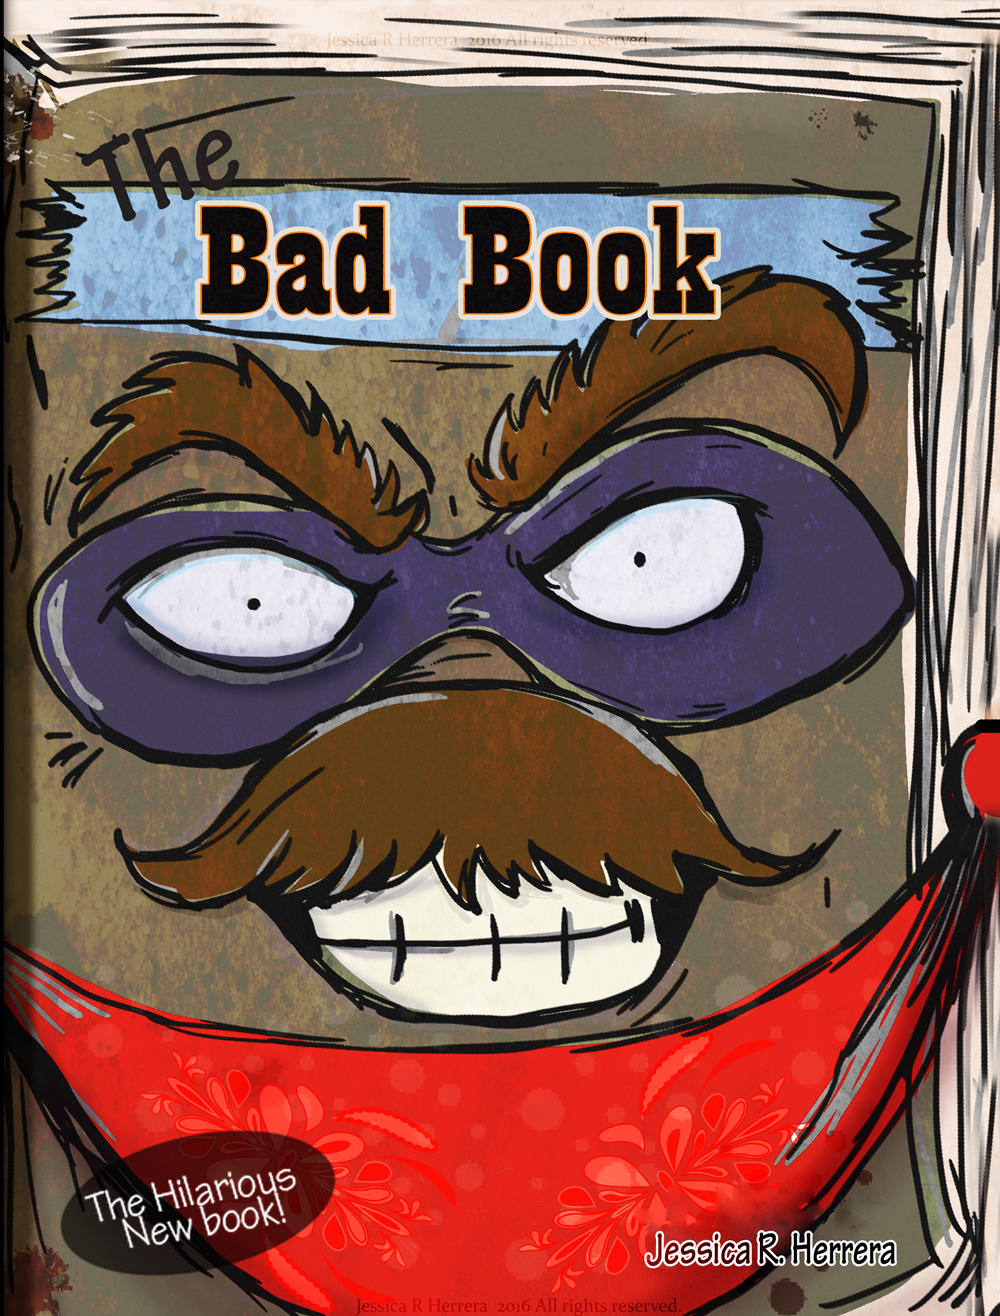 The Bad Book by Jessica R. Herrera